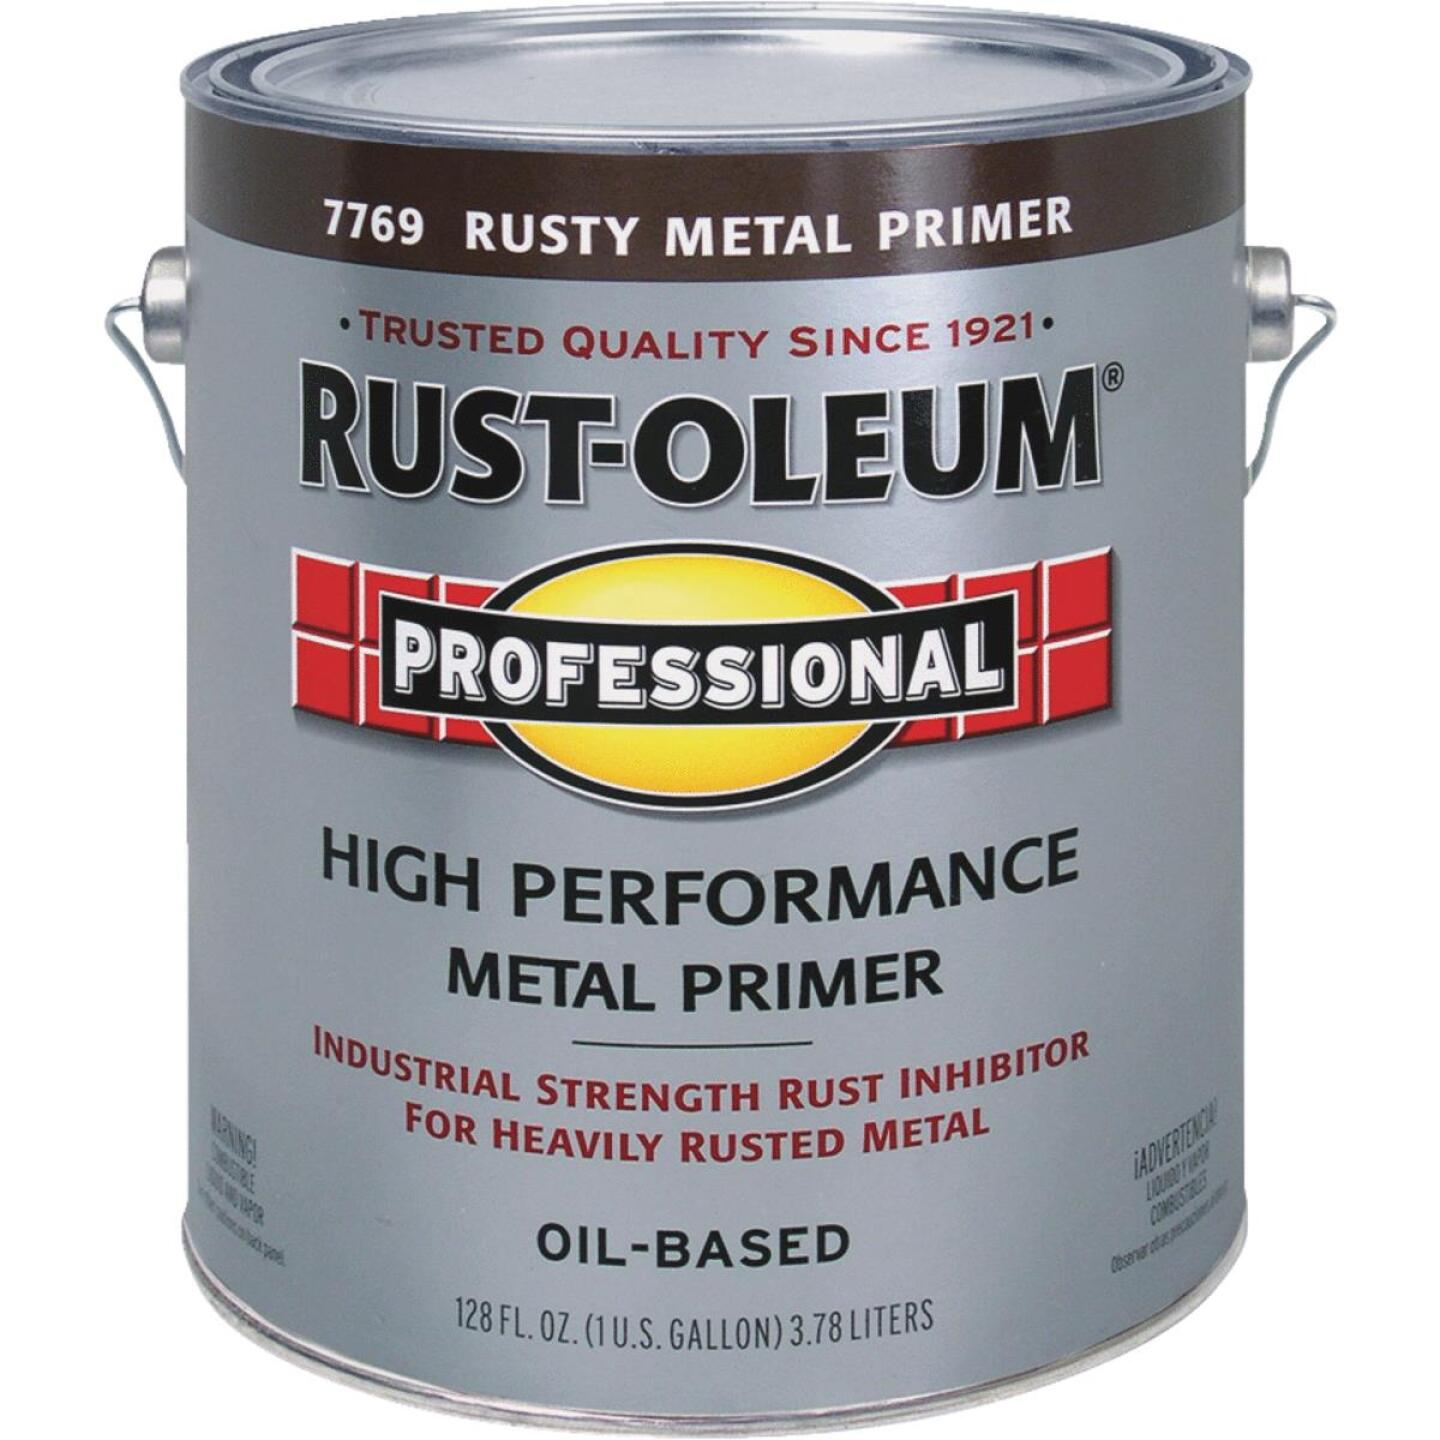 Rust-Oleum Professional High Performance Rusty Metal Primer, Red/Brown, 1 Gal. Image 1